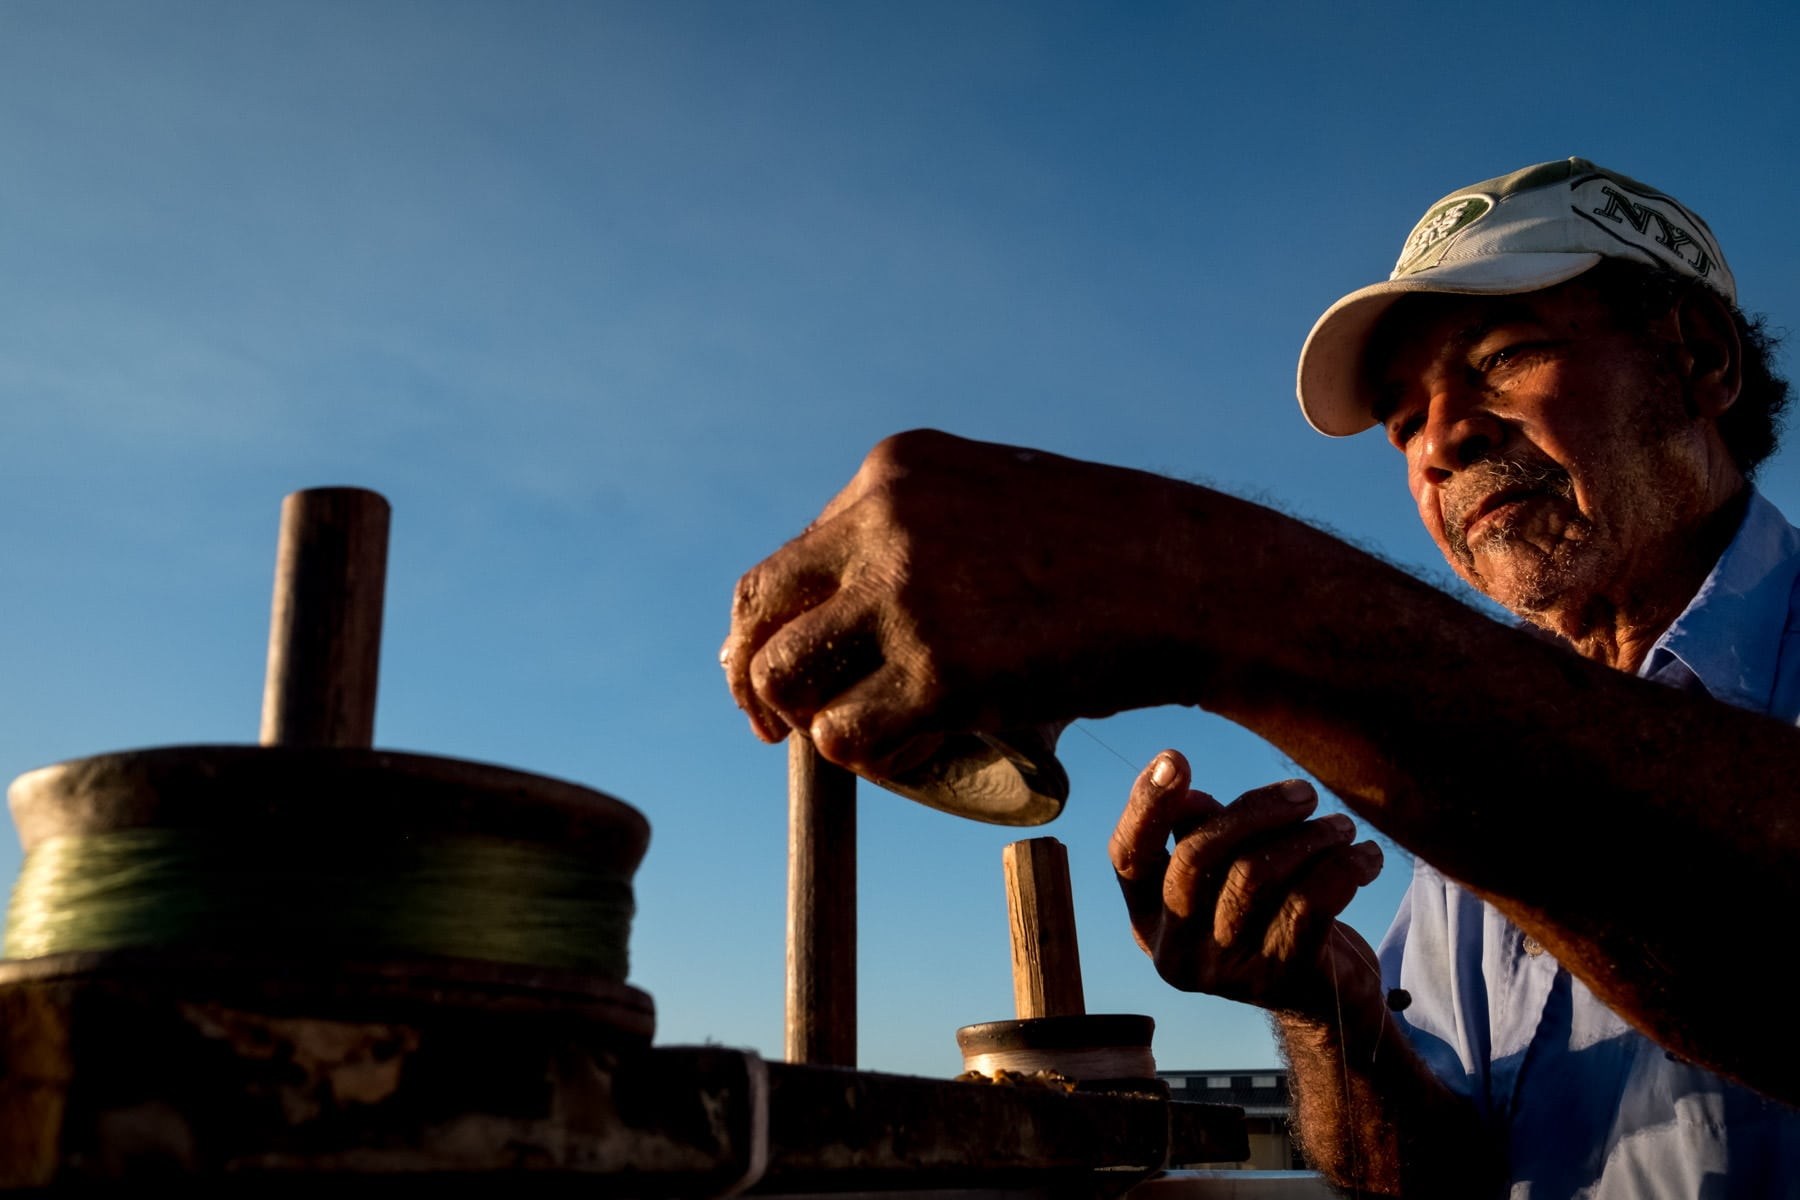 A Cuban fisherman at sunset casting lines against a blue sky taken by Havana street photographer Matt Badenoch